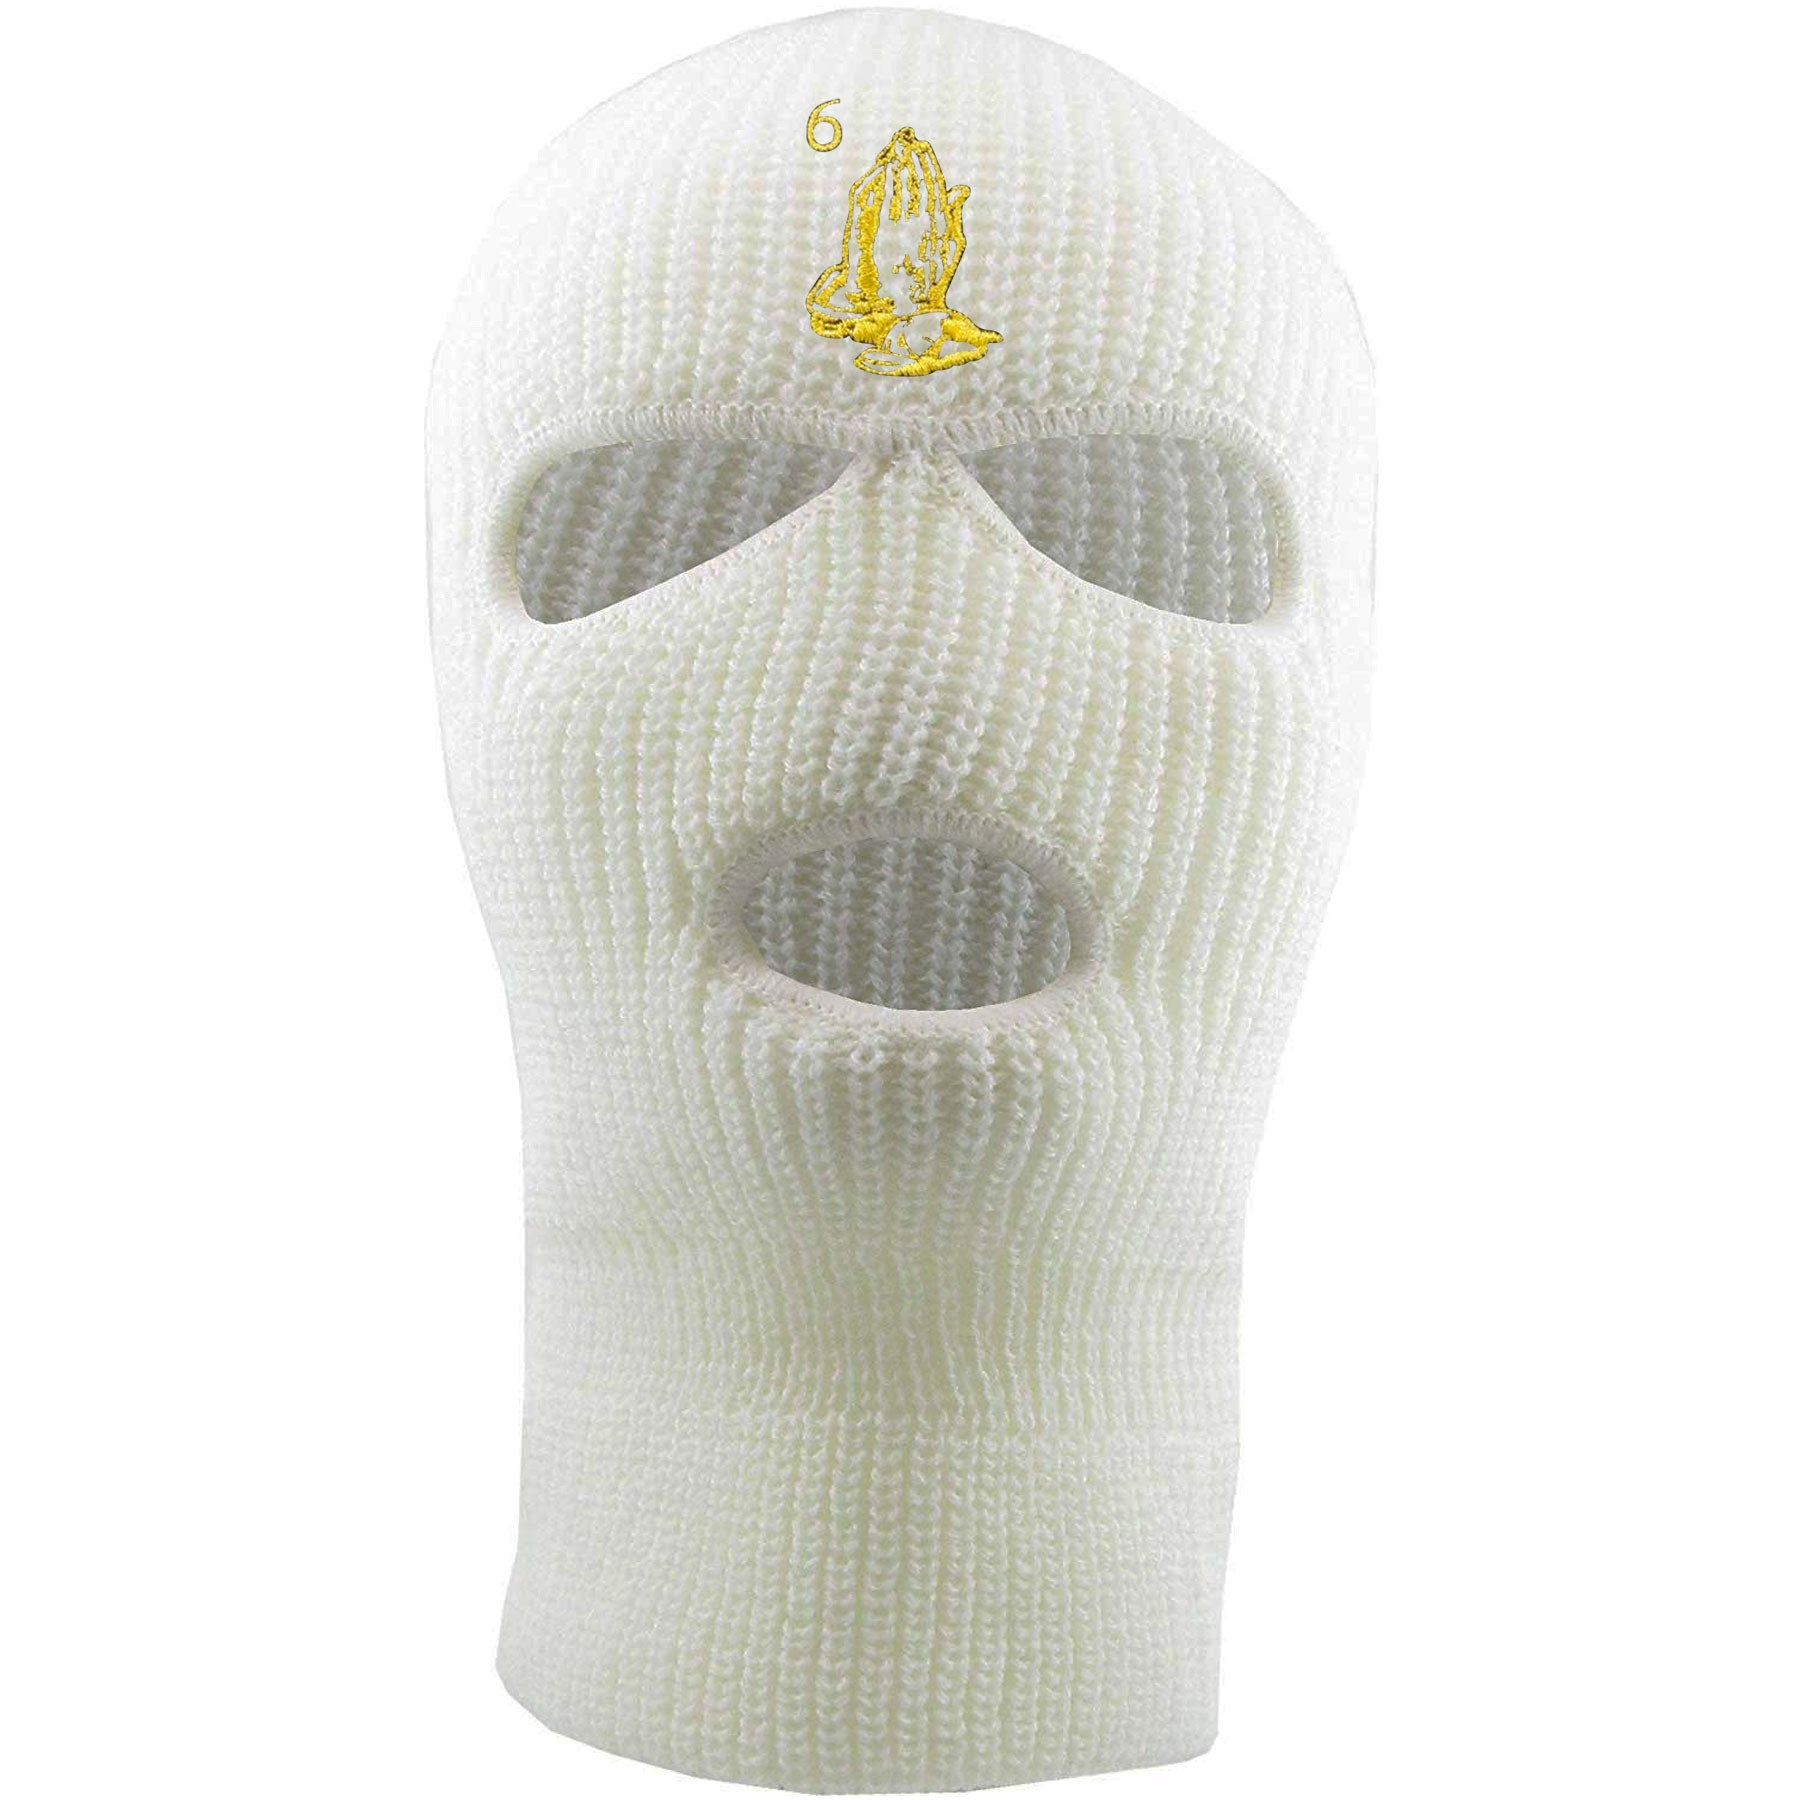 e6dba8d6c094e Embroidered on the forehead of the white OVO drake ski mask is the 6 god  logo